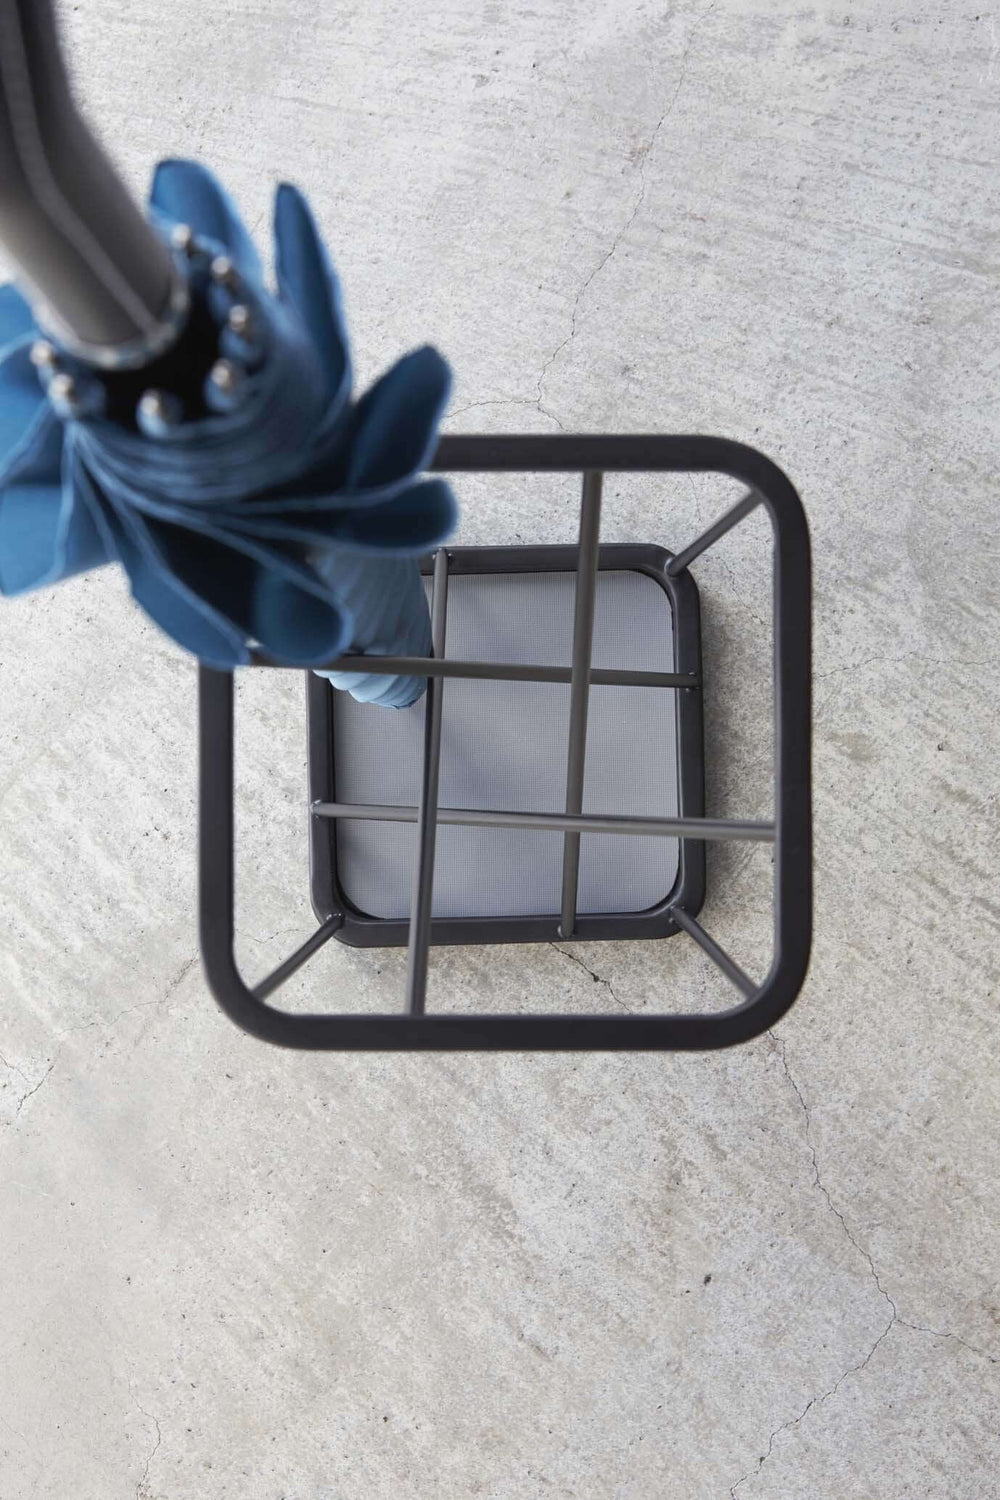 A Yamazaki umbrella stand designed with criss-crossing lines forms a nine-square grid when seen from above.